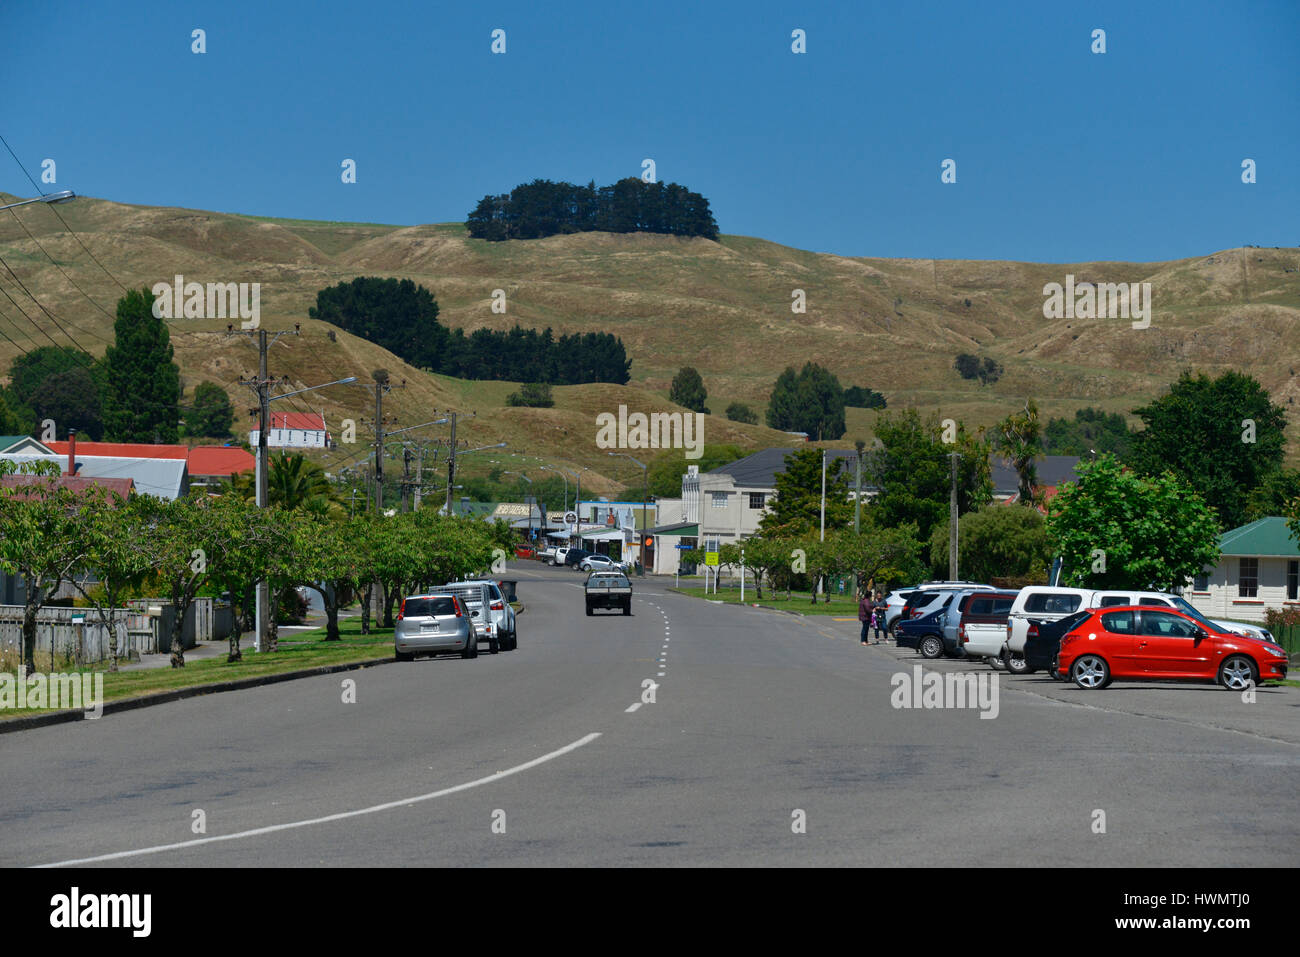 The main street in the central North Island town of Hunterville, New Zealand, with a backdrop of ranges and macrocarpa - Stock Image